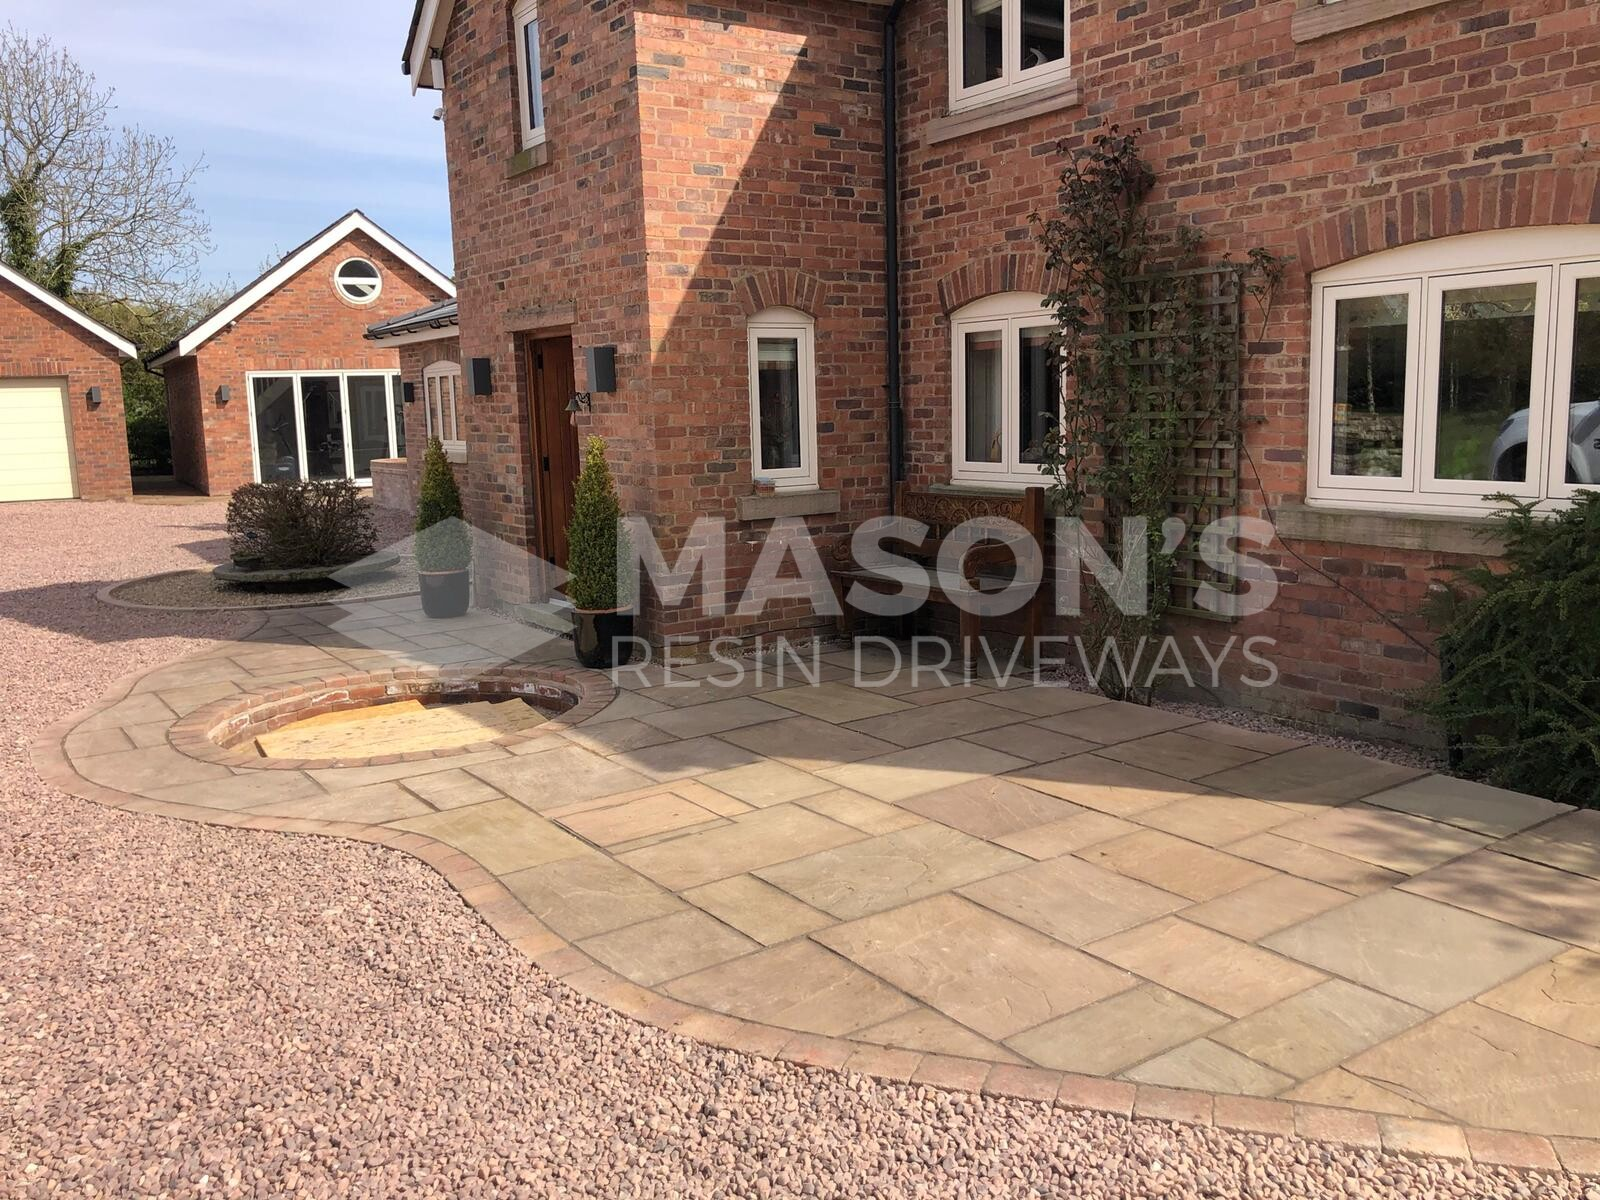 aggregate driveway and indian stone